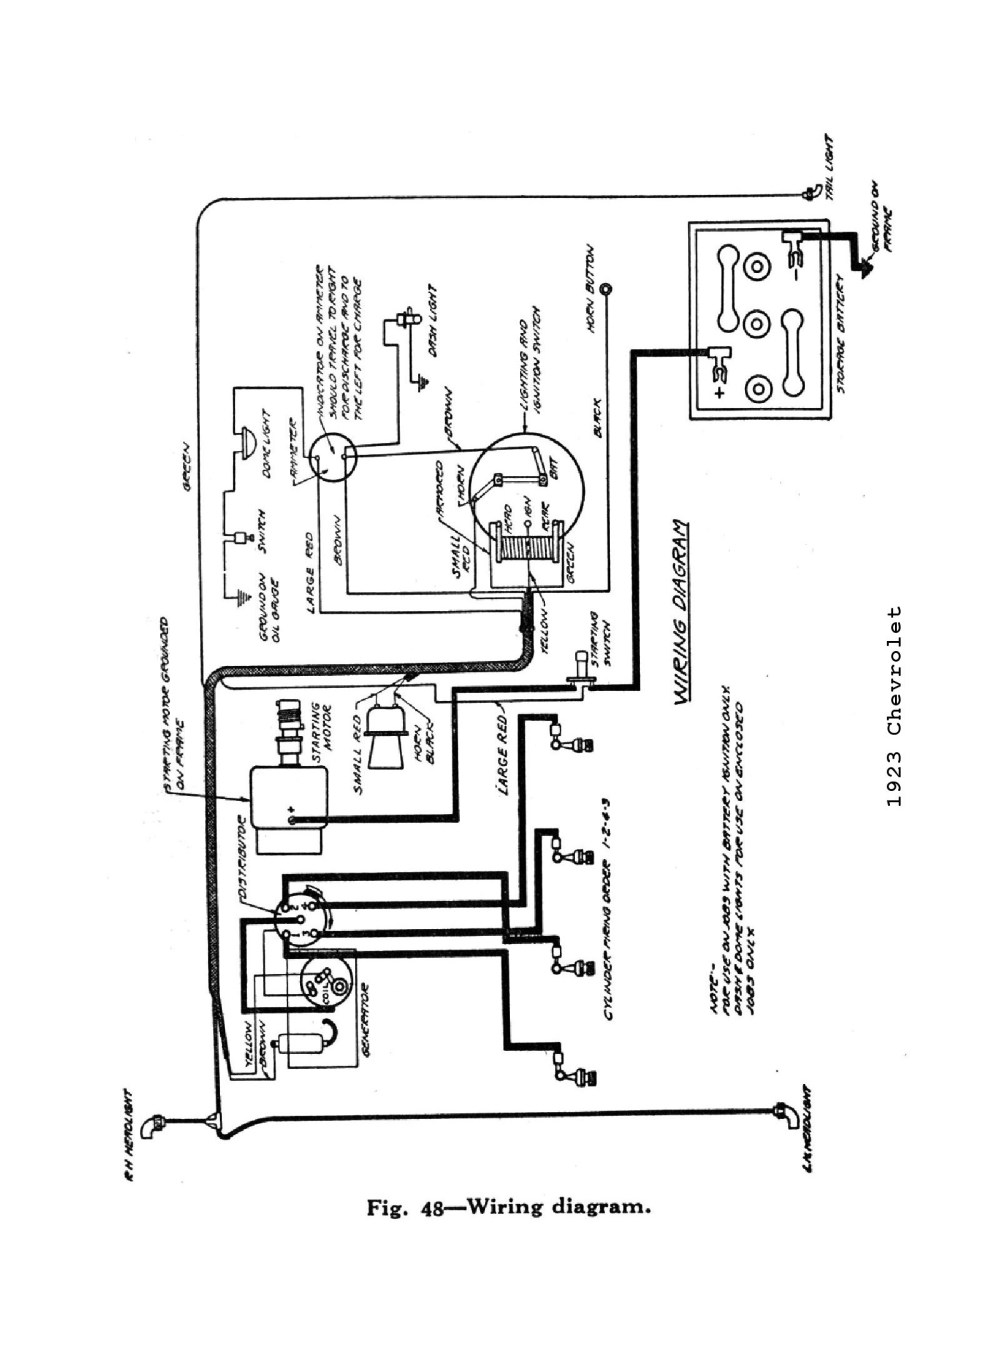 medium resolution of 1967 chevy impala gas gauge wiring diagram wiring diagram u2022 62 impala wiring diagram 1967